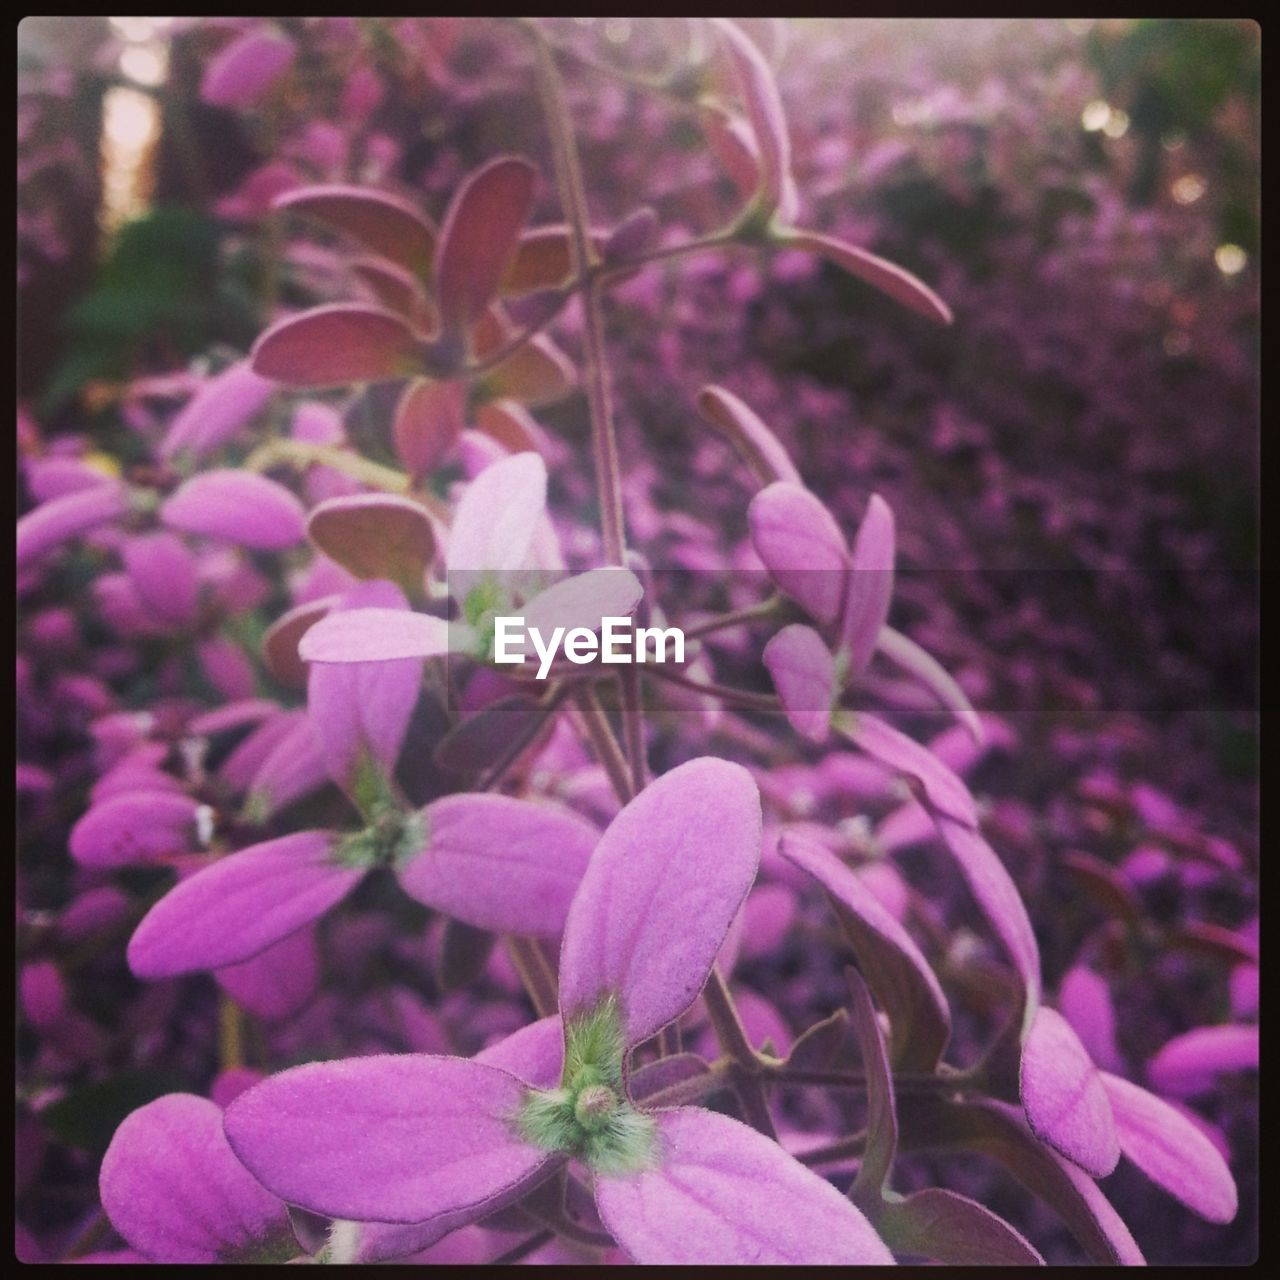 growth, flower, plant, nature, fragility, beauty in nature, petal, freshness, no people, pink color, blooming, outdoors, close-up, day, flower head